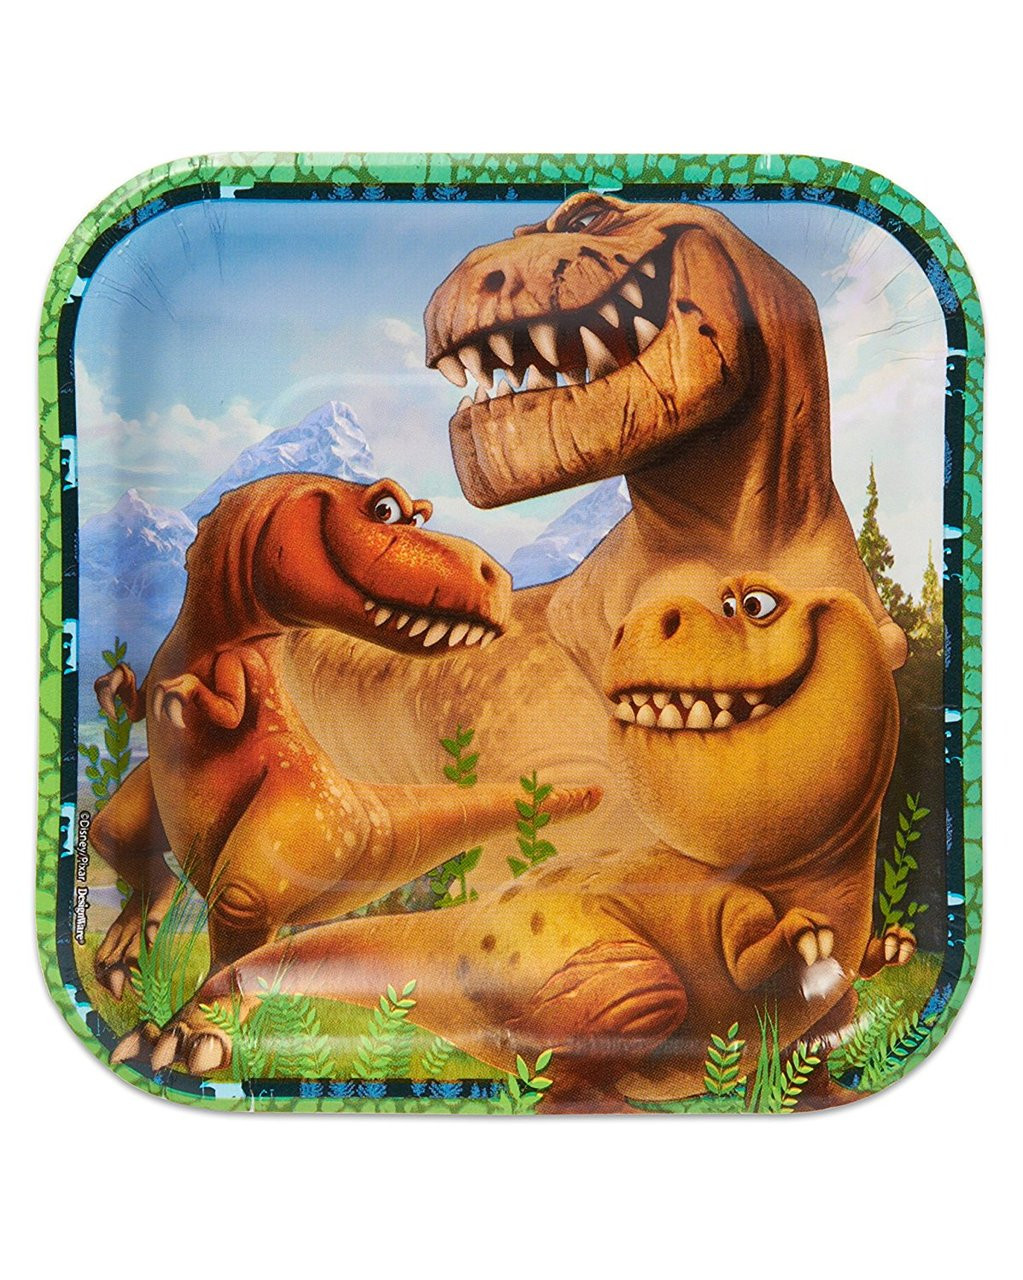 The Good Dinosaur Small 7 Inch Party Cake Dessert Plates